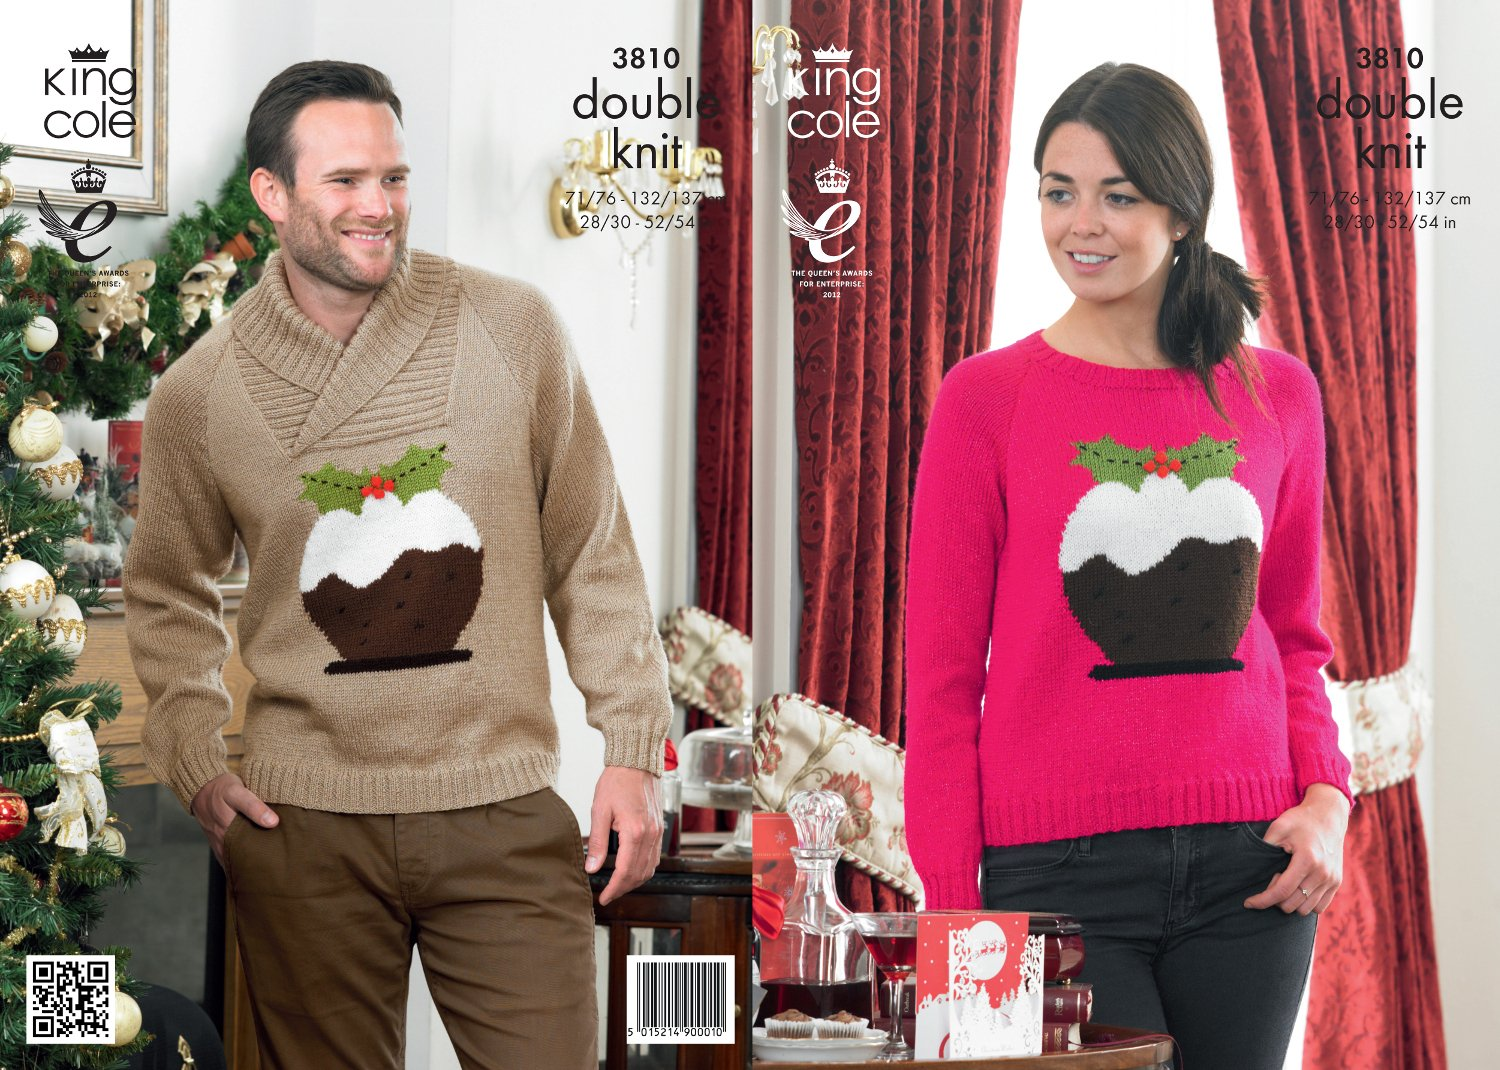 King Cole DK Knitting Pattern 3810 Christmas Sweaters